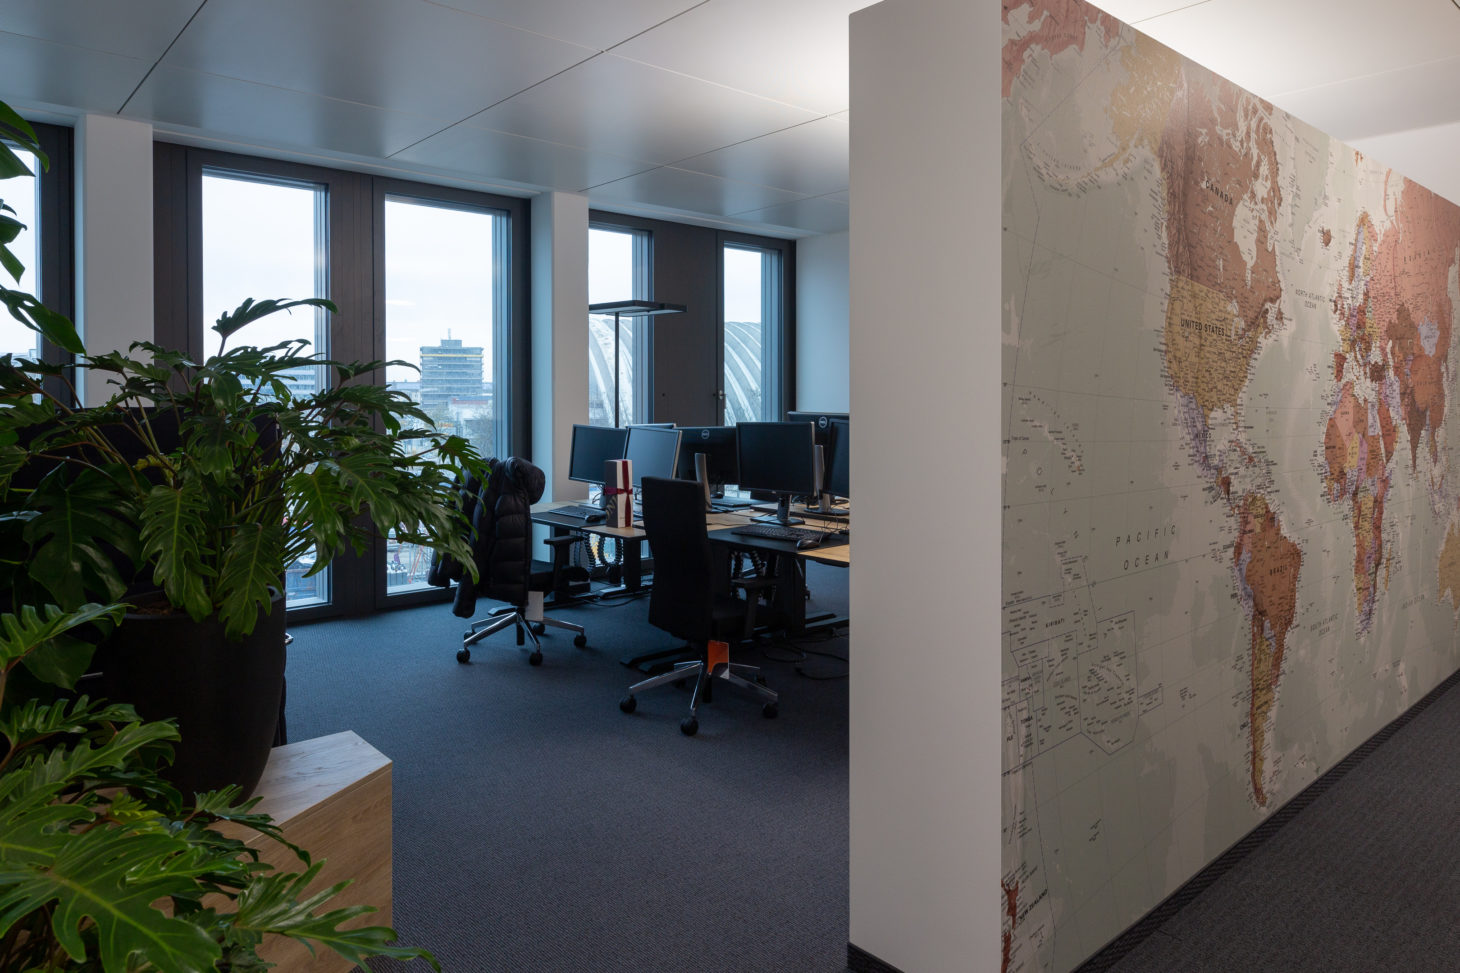 Picture of offices and world map, valantic branch Supply Chain Excellence Munich